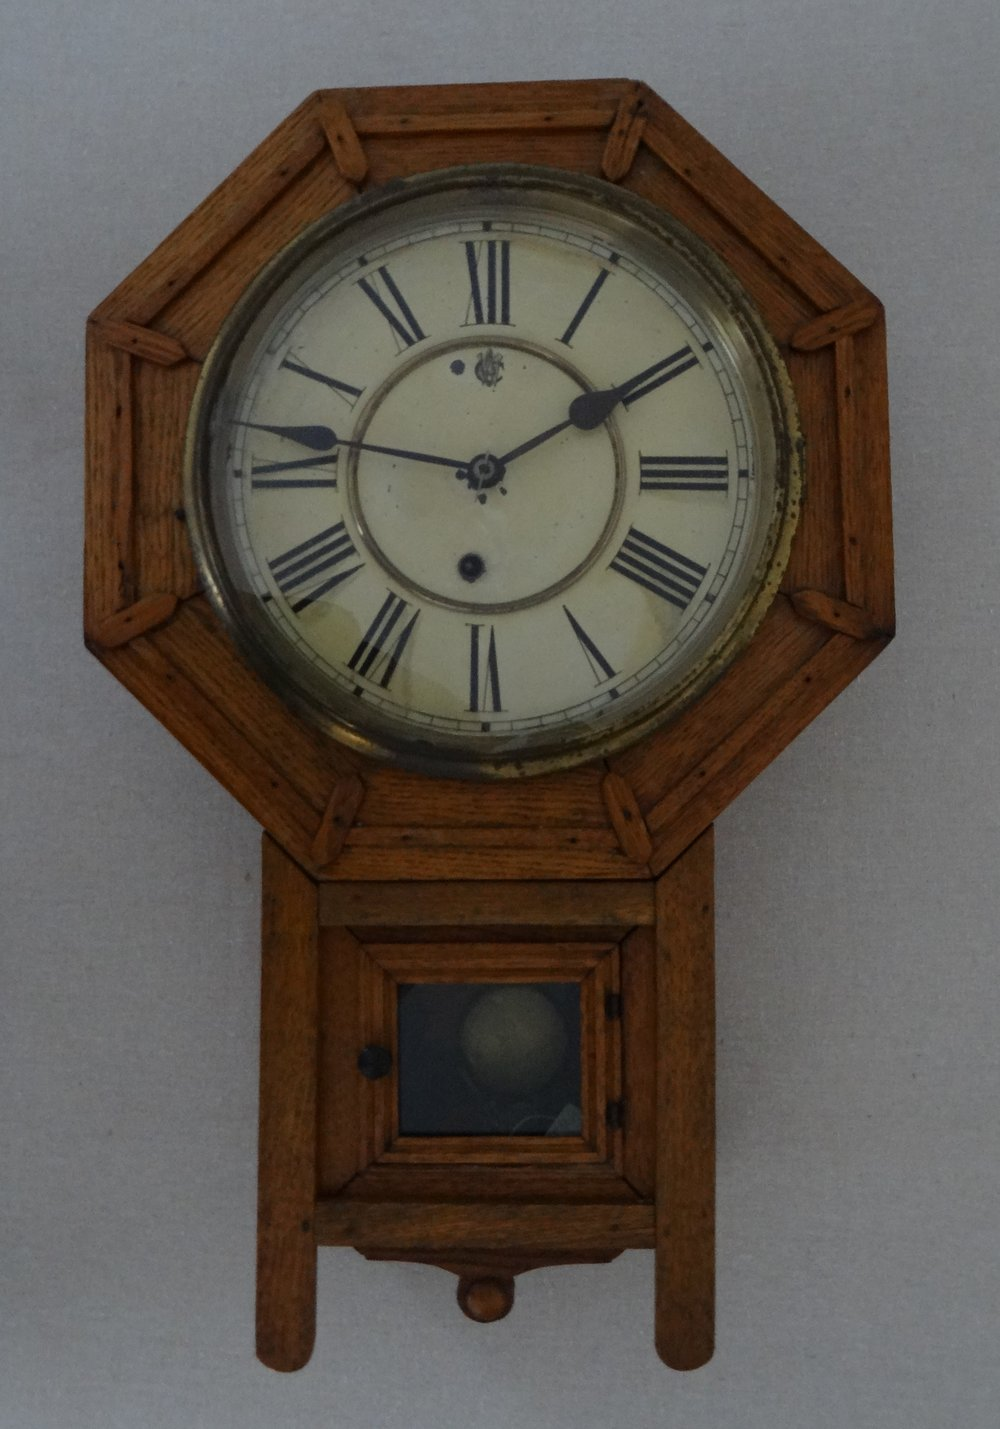 Clowers Family Clock, Waterbury Clock Co., Waterbury, CT. c1890.Brought to Richwood when the family migrated north from Dames Crossing, GA, in the 1940s. [HTHS: Reuter-Bilewicz Collection]